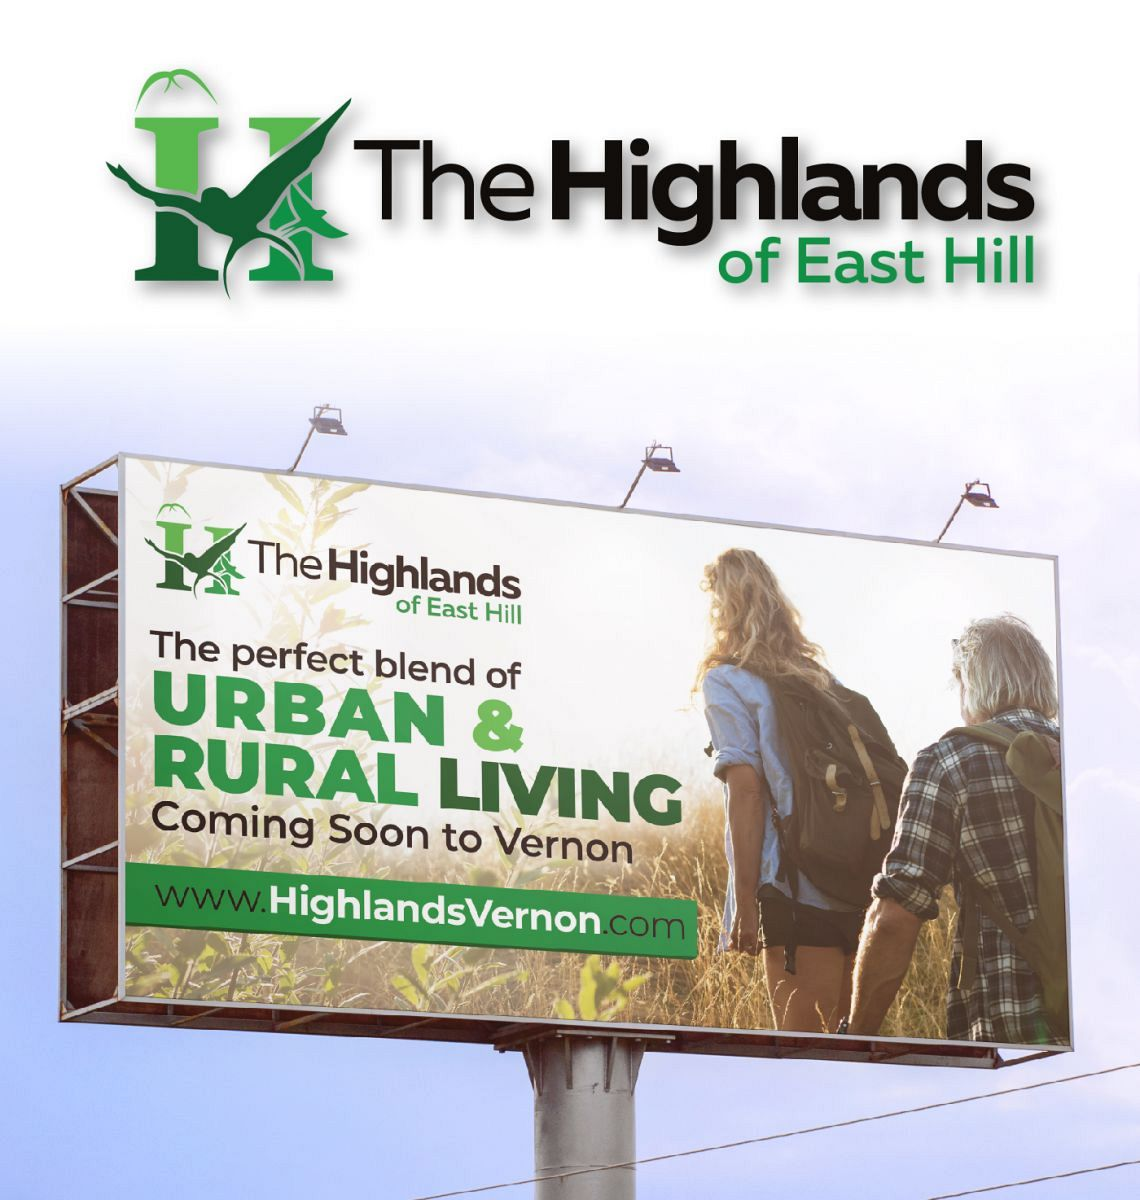 Highlands of East Hill Branding and Billboard